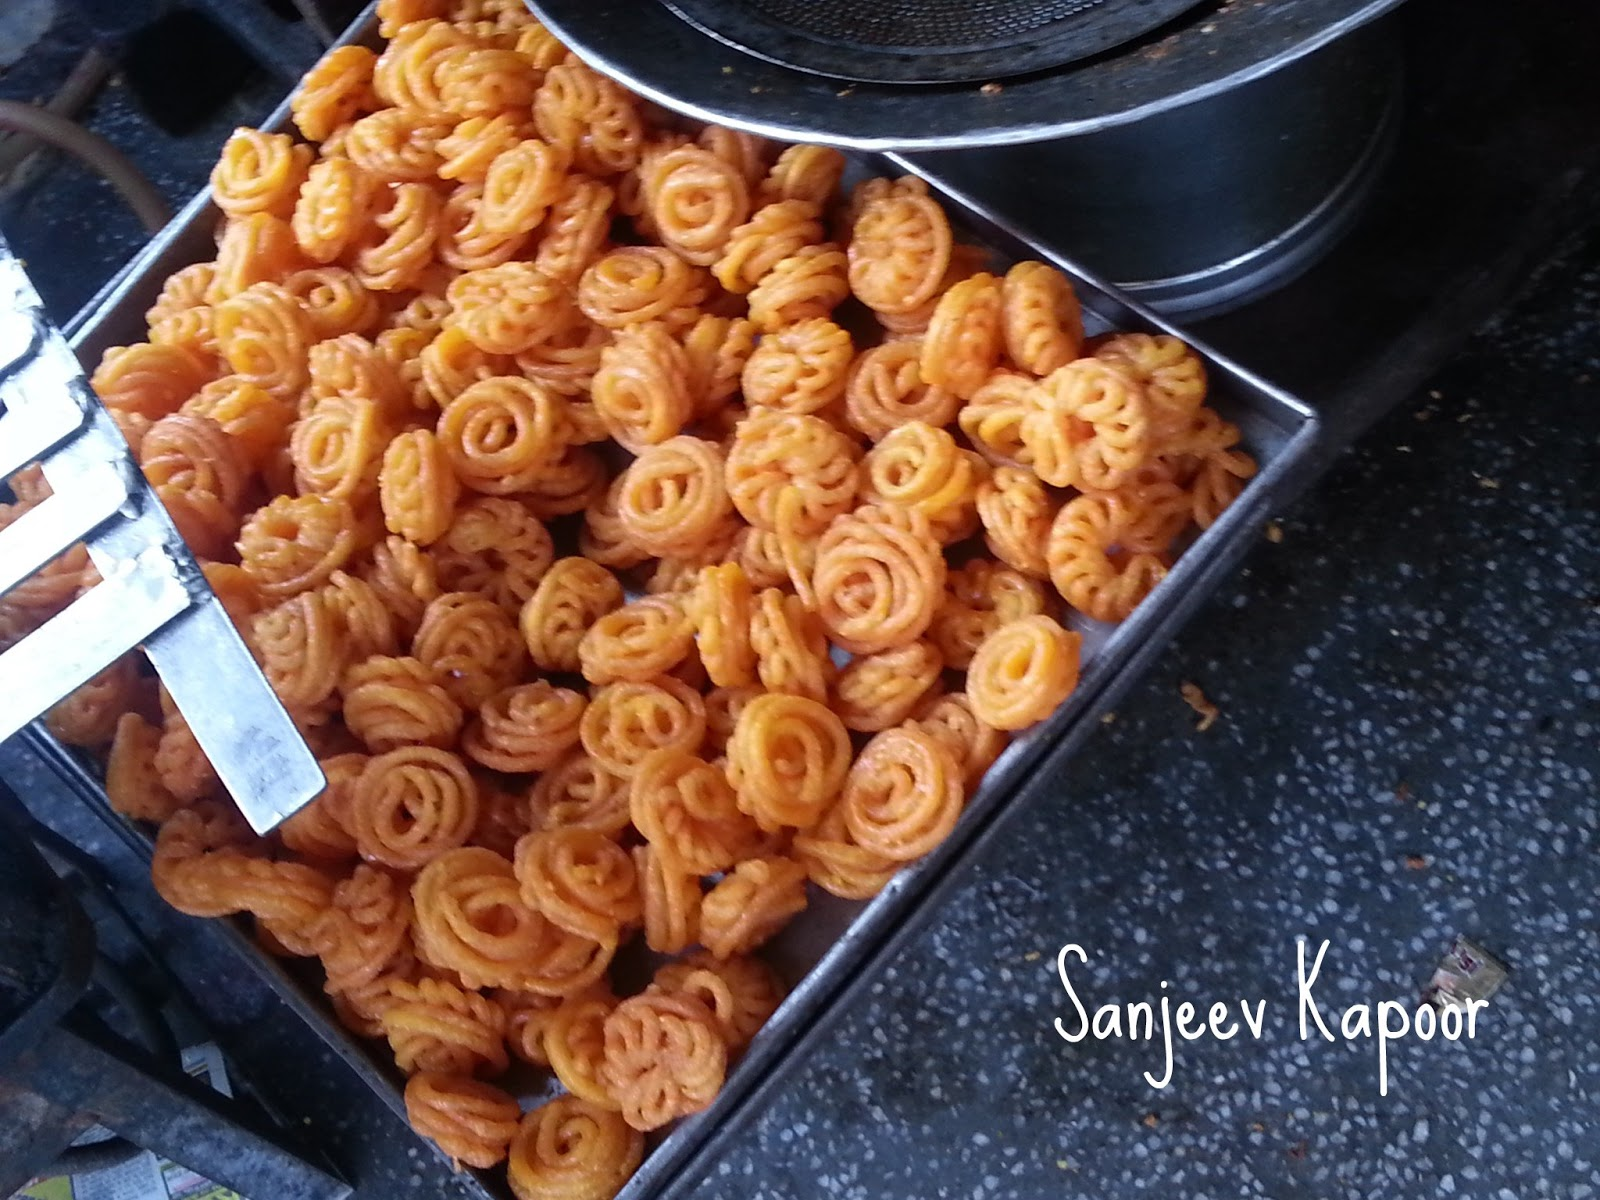 Master chef sanjeev kapoor from my kitchen page 4 ready forumfinder Choice Image